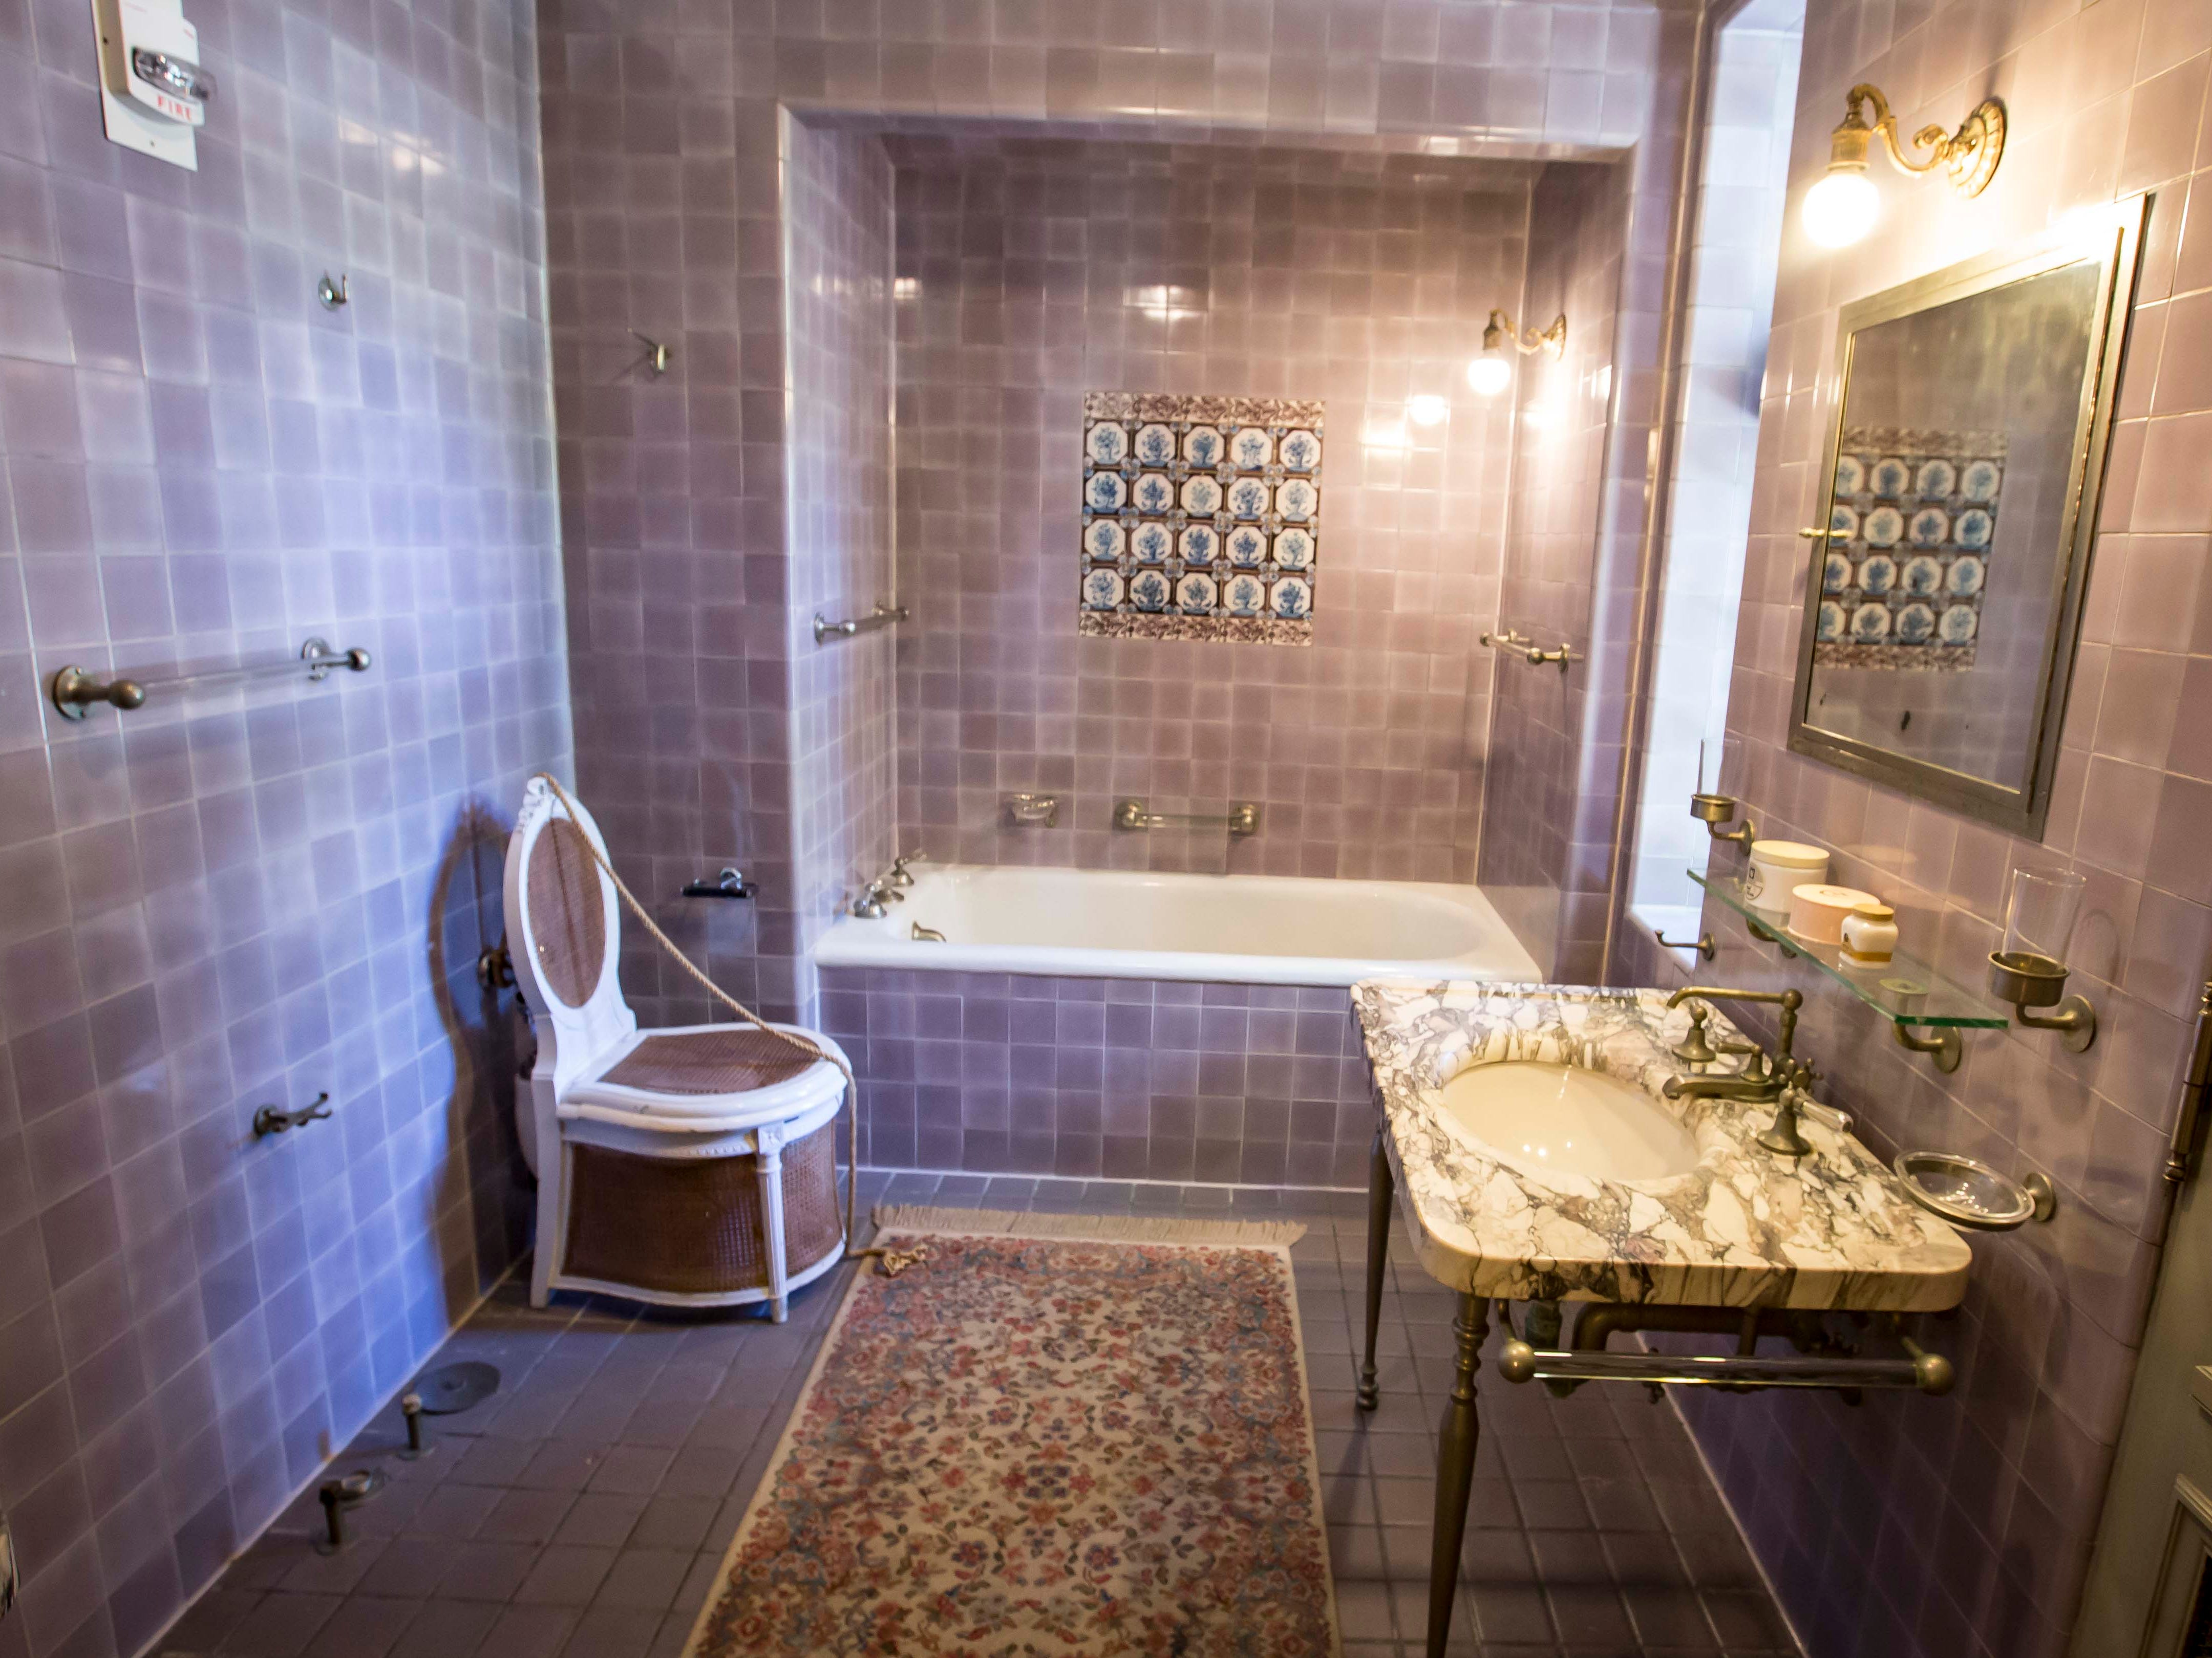 The private bathroom for Edith Weeks is decidedly feminine